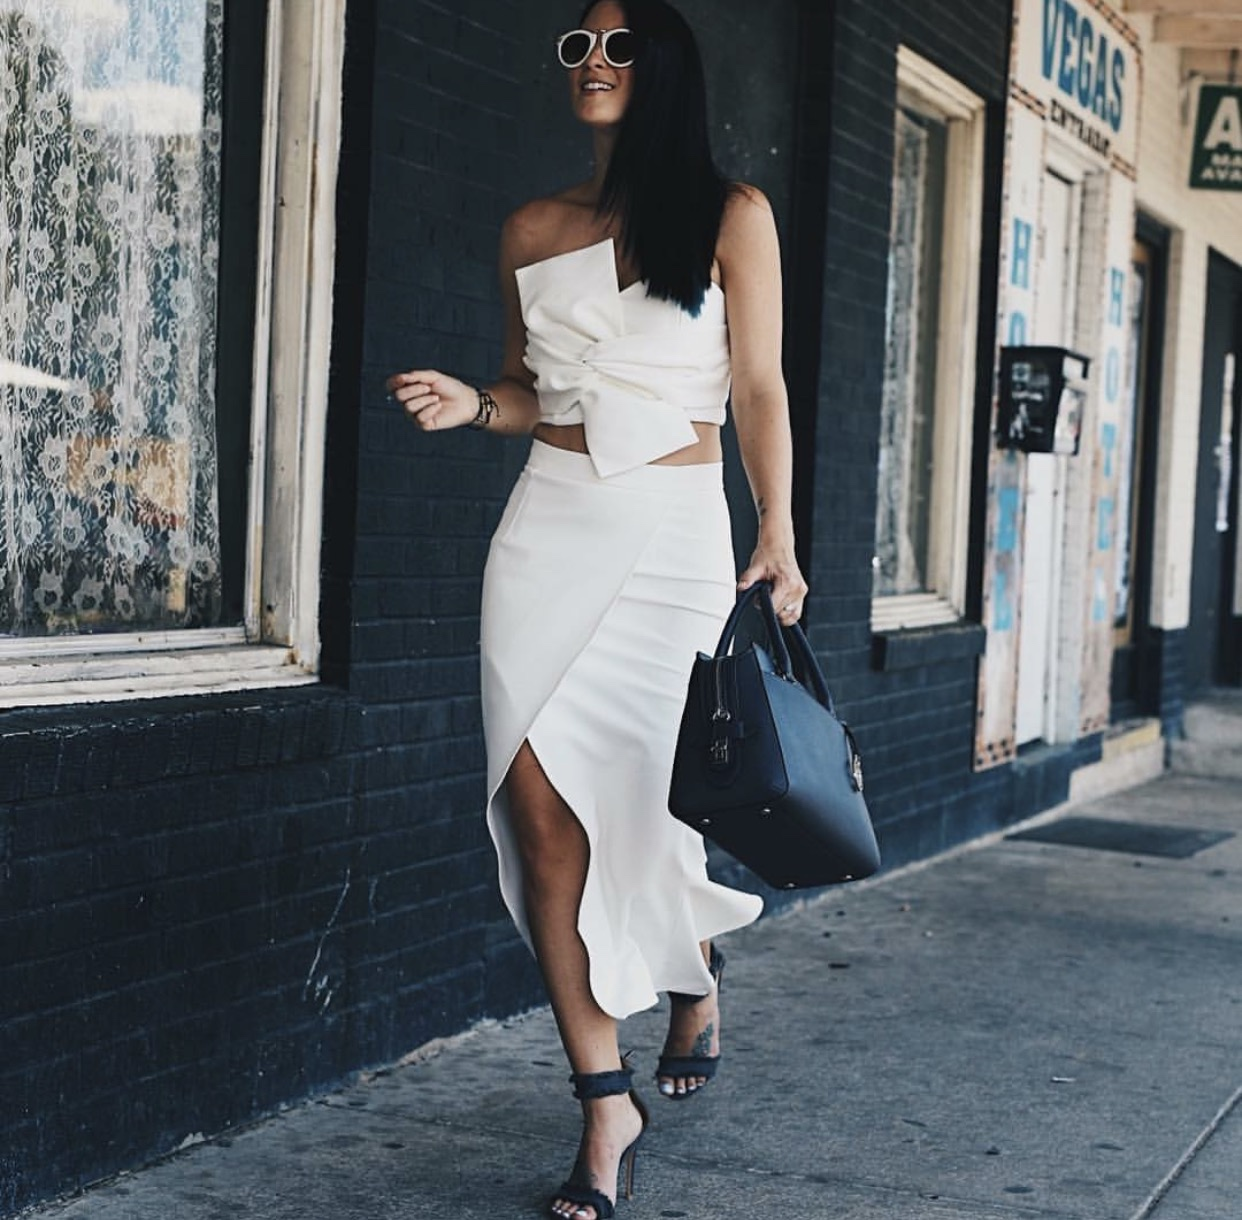 Instagram Outfit Roundup - Favorite August Looks   Fall fashion tips   Fall outfit ideas   Fall style tips   what to wear for Fall   cold weather fashion   fashion for fall   style tips for fall   outfit ideas for fall    Dressed to Kill